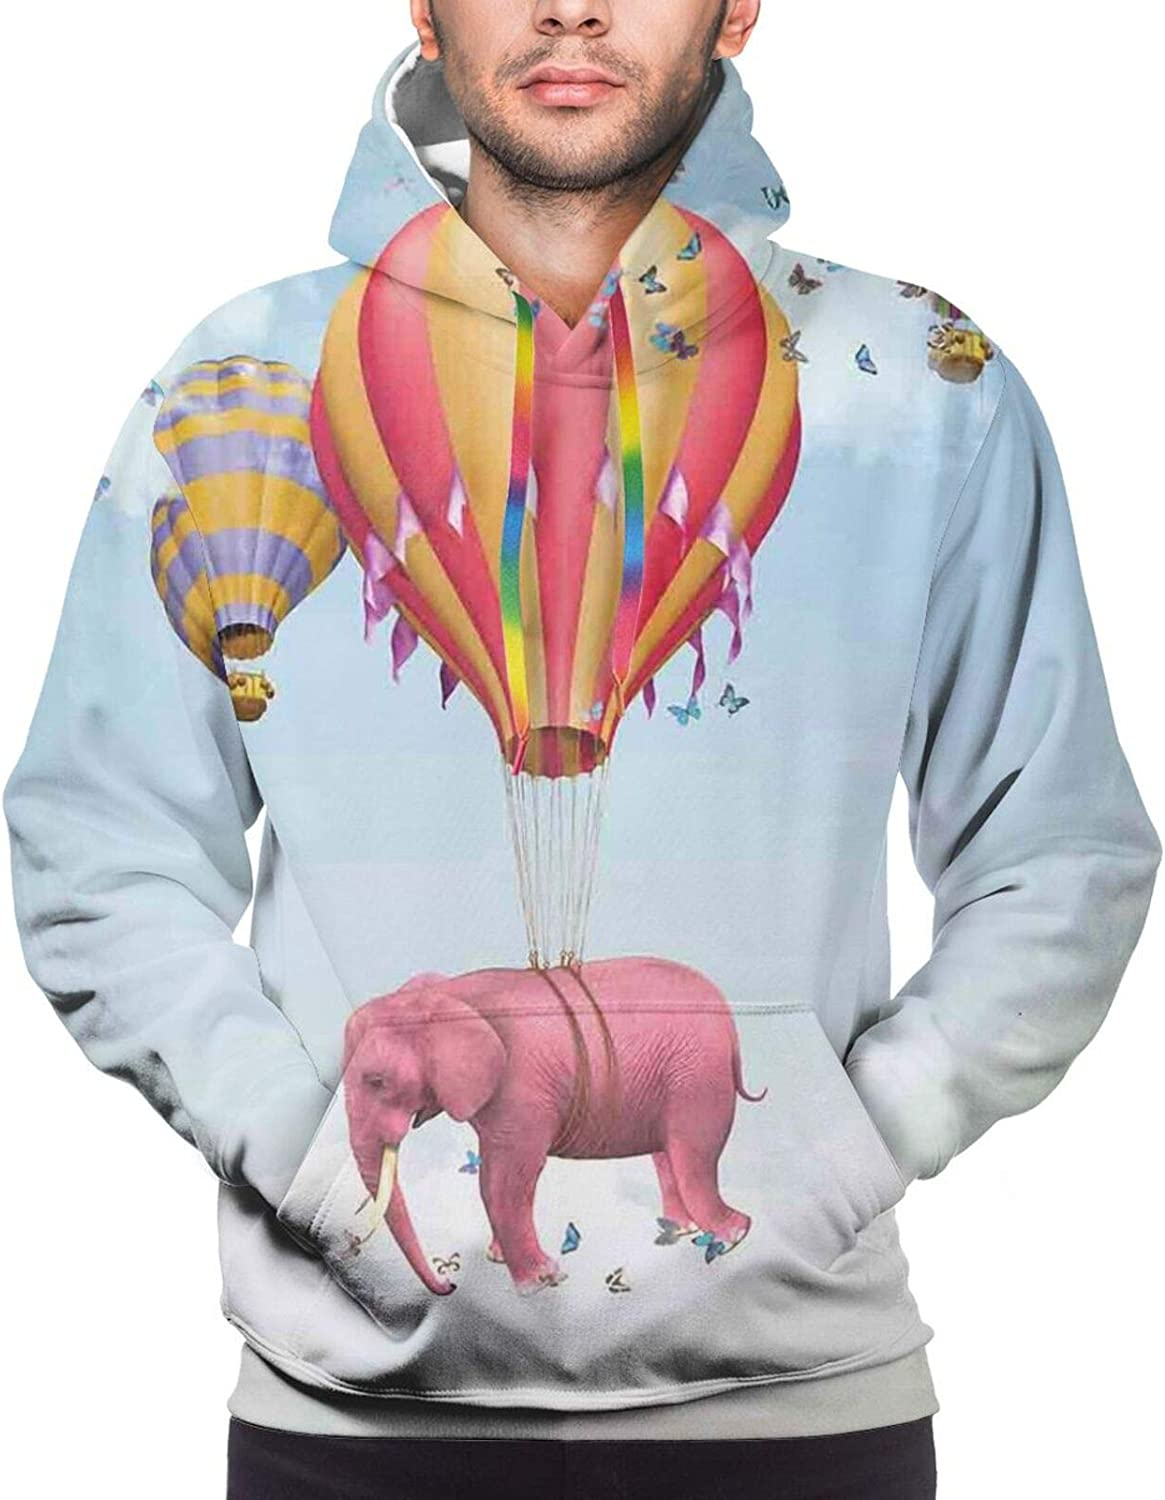 Men's Hoodies Sweatshirts,Pink Elephant Flying Through The Sky Happiness Freedom and Fantasy